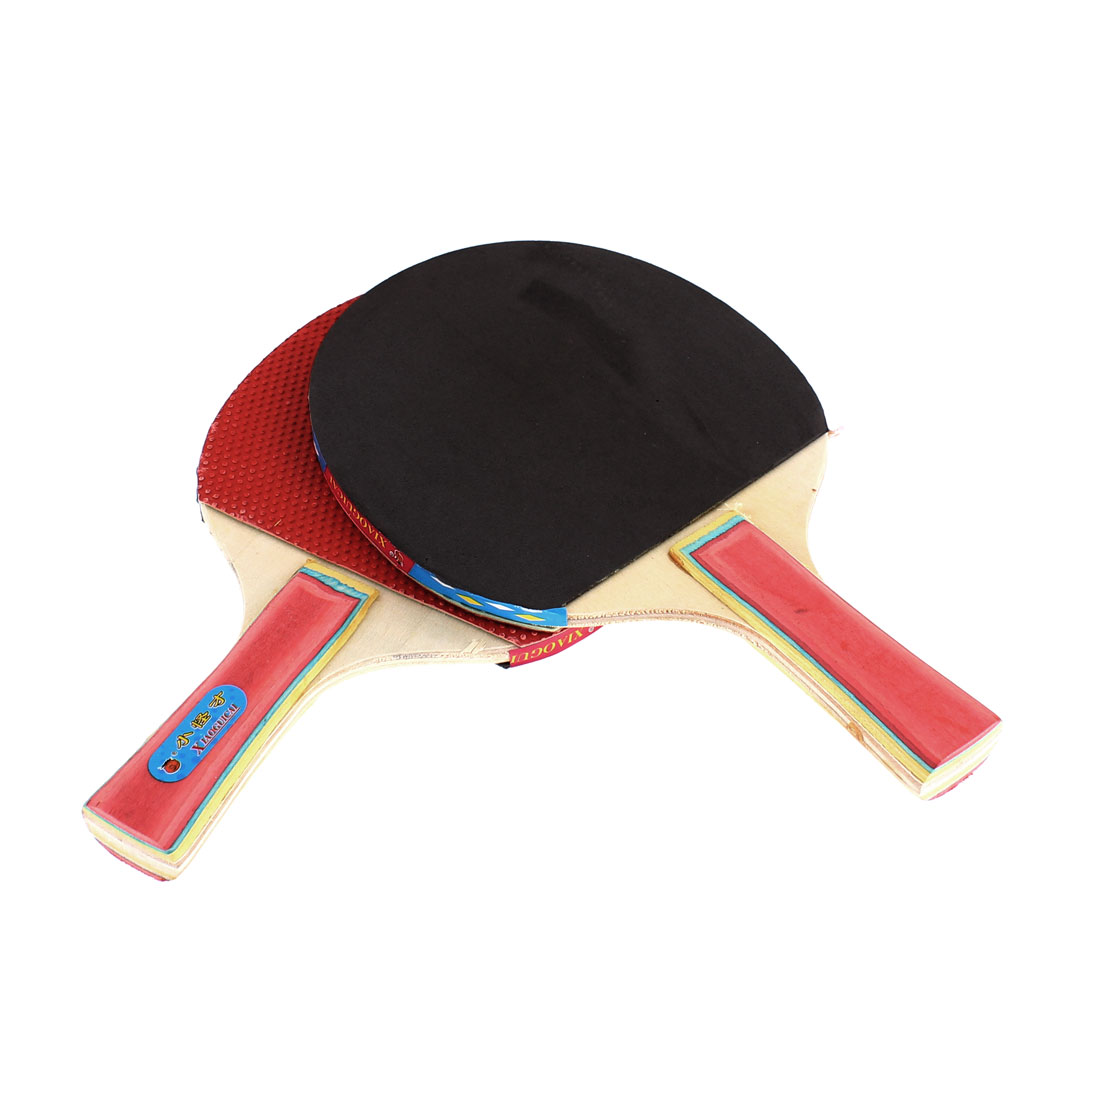 Ping Pong Paddles Penhold Recreational Colorful Handle Table Tennis Bat Racket Racquet Red Gray Pair